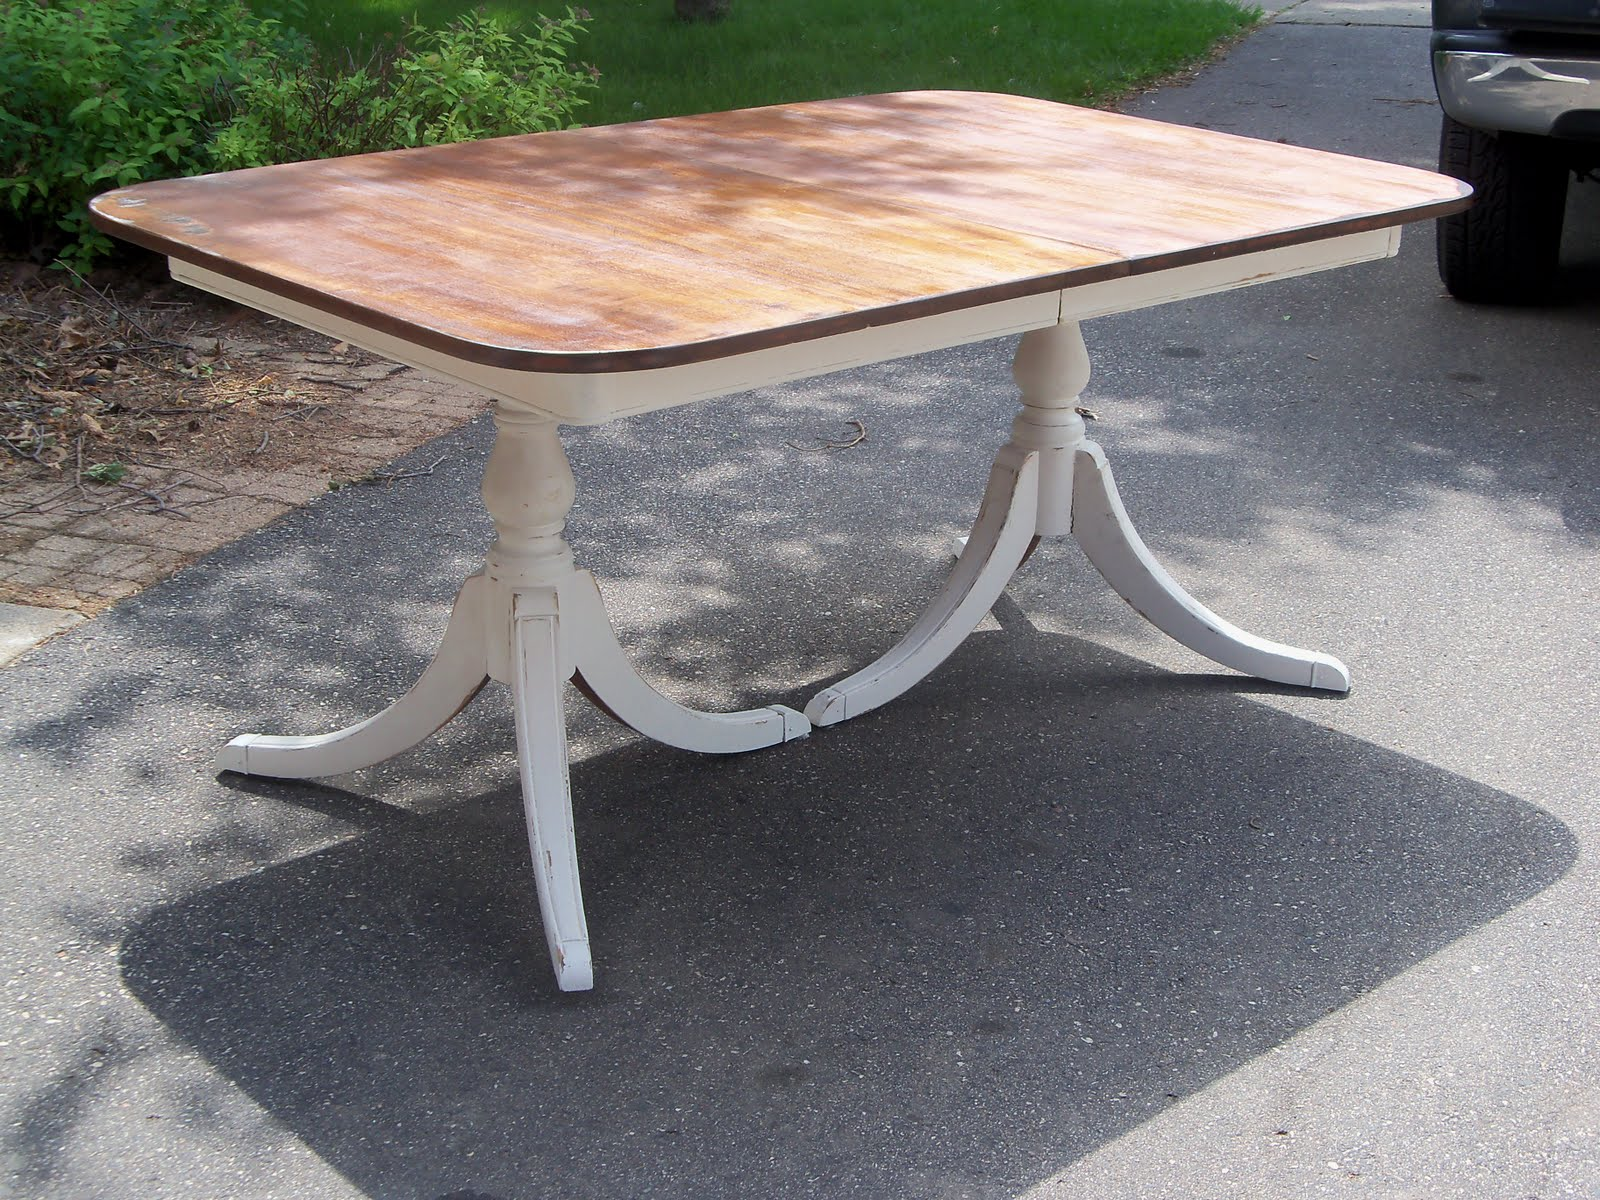 Country Style Accents: A Duncan phyfe table that sums up what ...